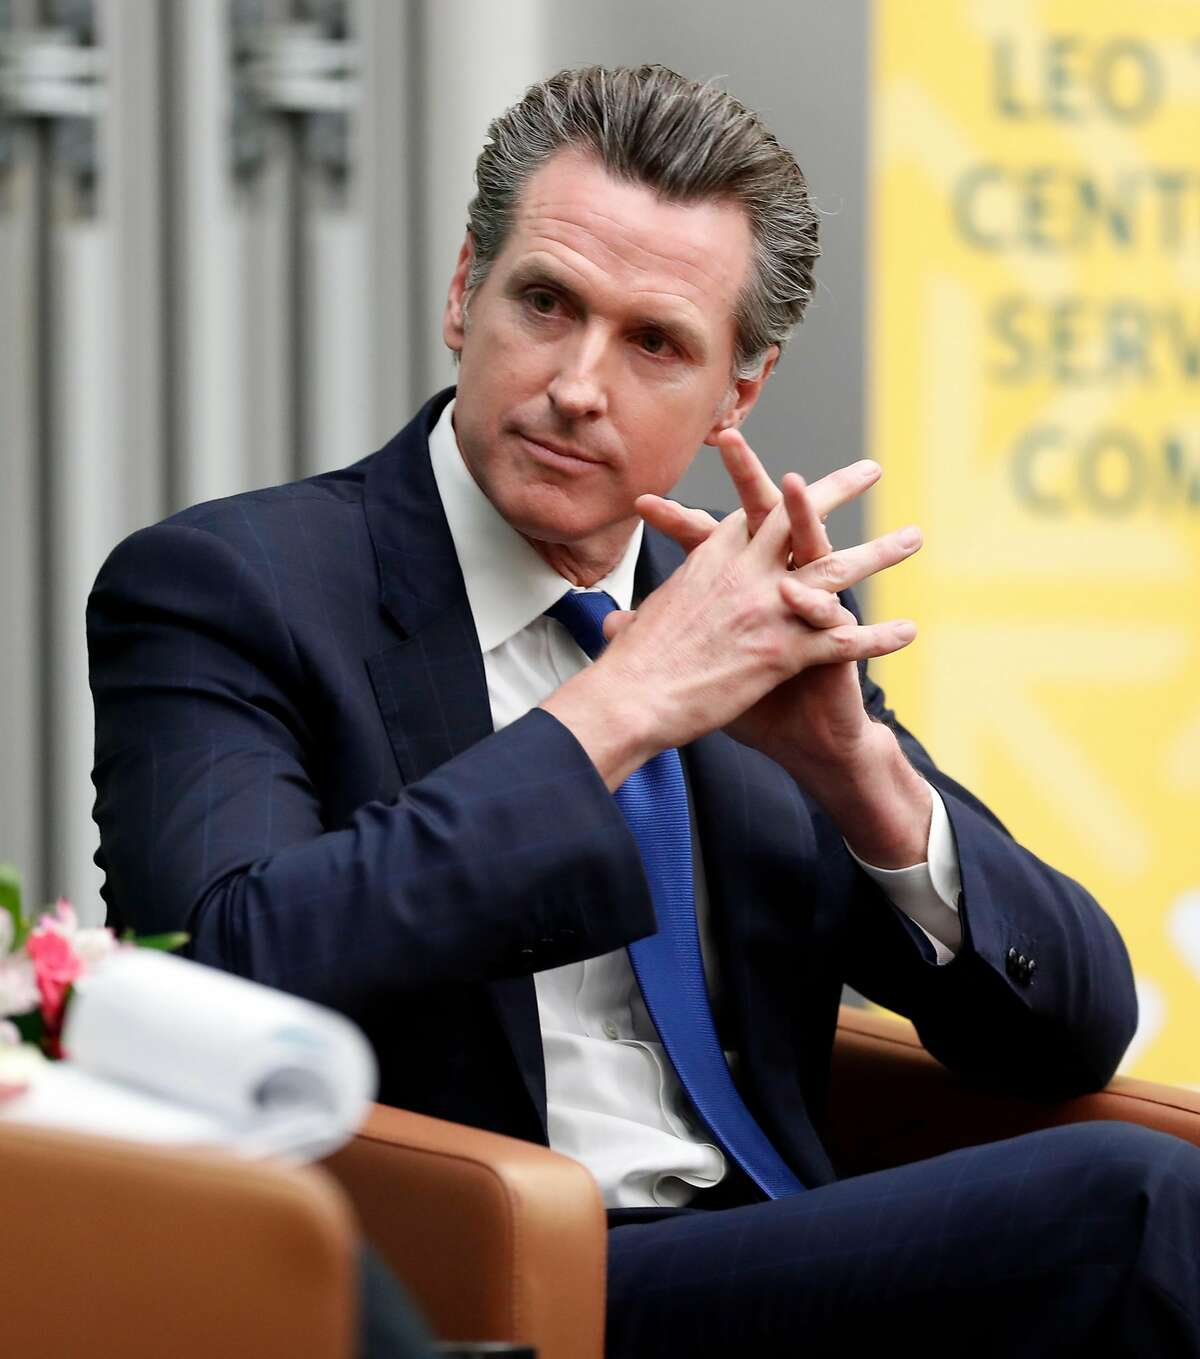 California Lt. Governor and Gubernatorial candidate Gavin Newsom is interviewed by Politico's Carla Marinucci at University of San Francisco in San Francisco on Monday, February 5, 2018.